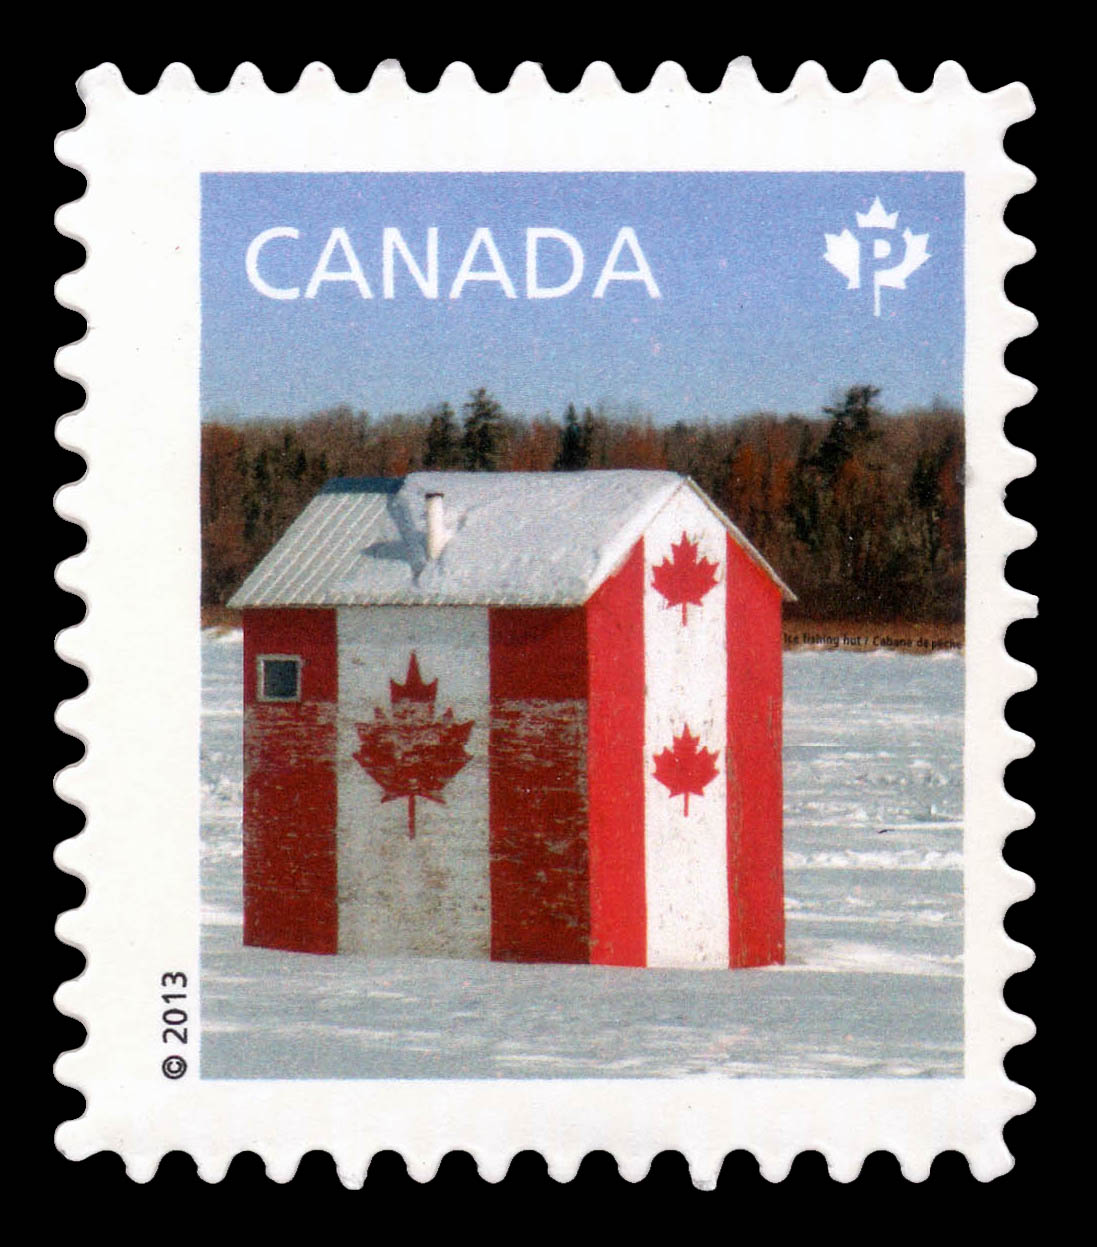 Ice Fishing Hut Flag Design Canada Postage Stamp | Canadian Pride - Definitives